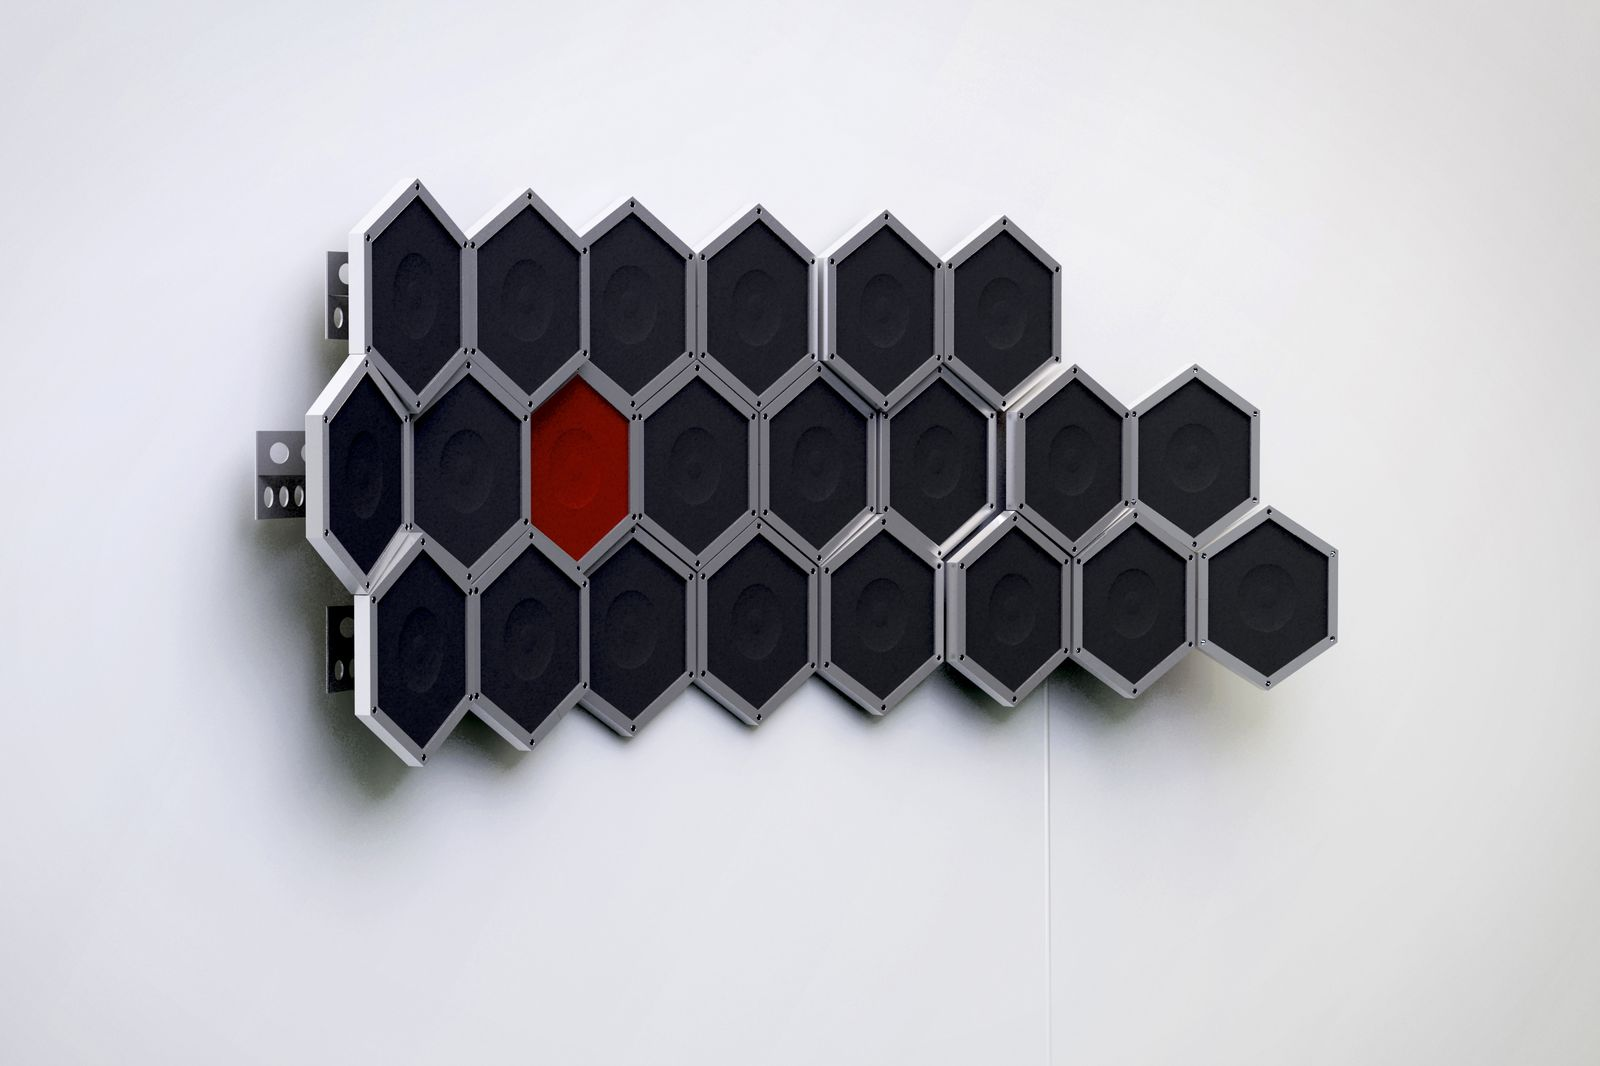 Hive modular speakers system